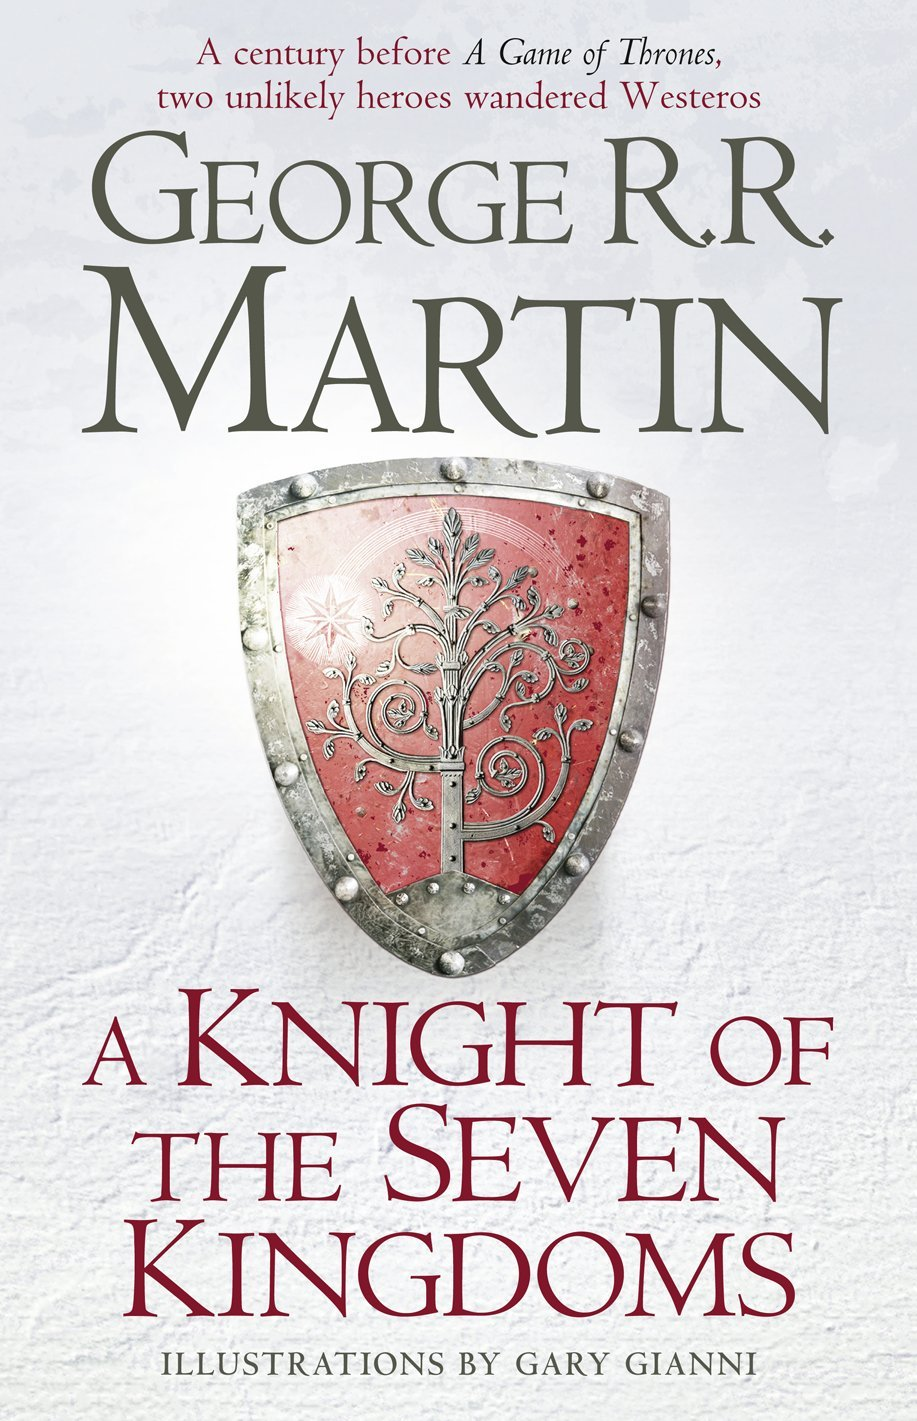 A Knight of the Seven Kingdoms por George R.R. Martin